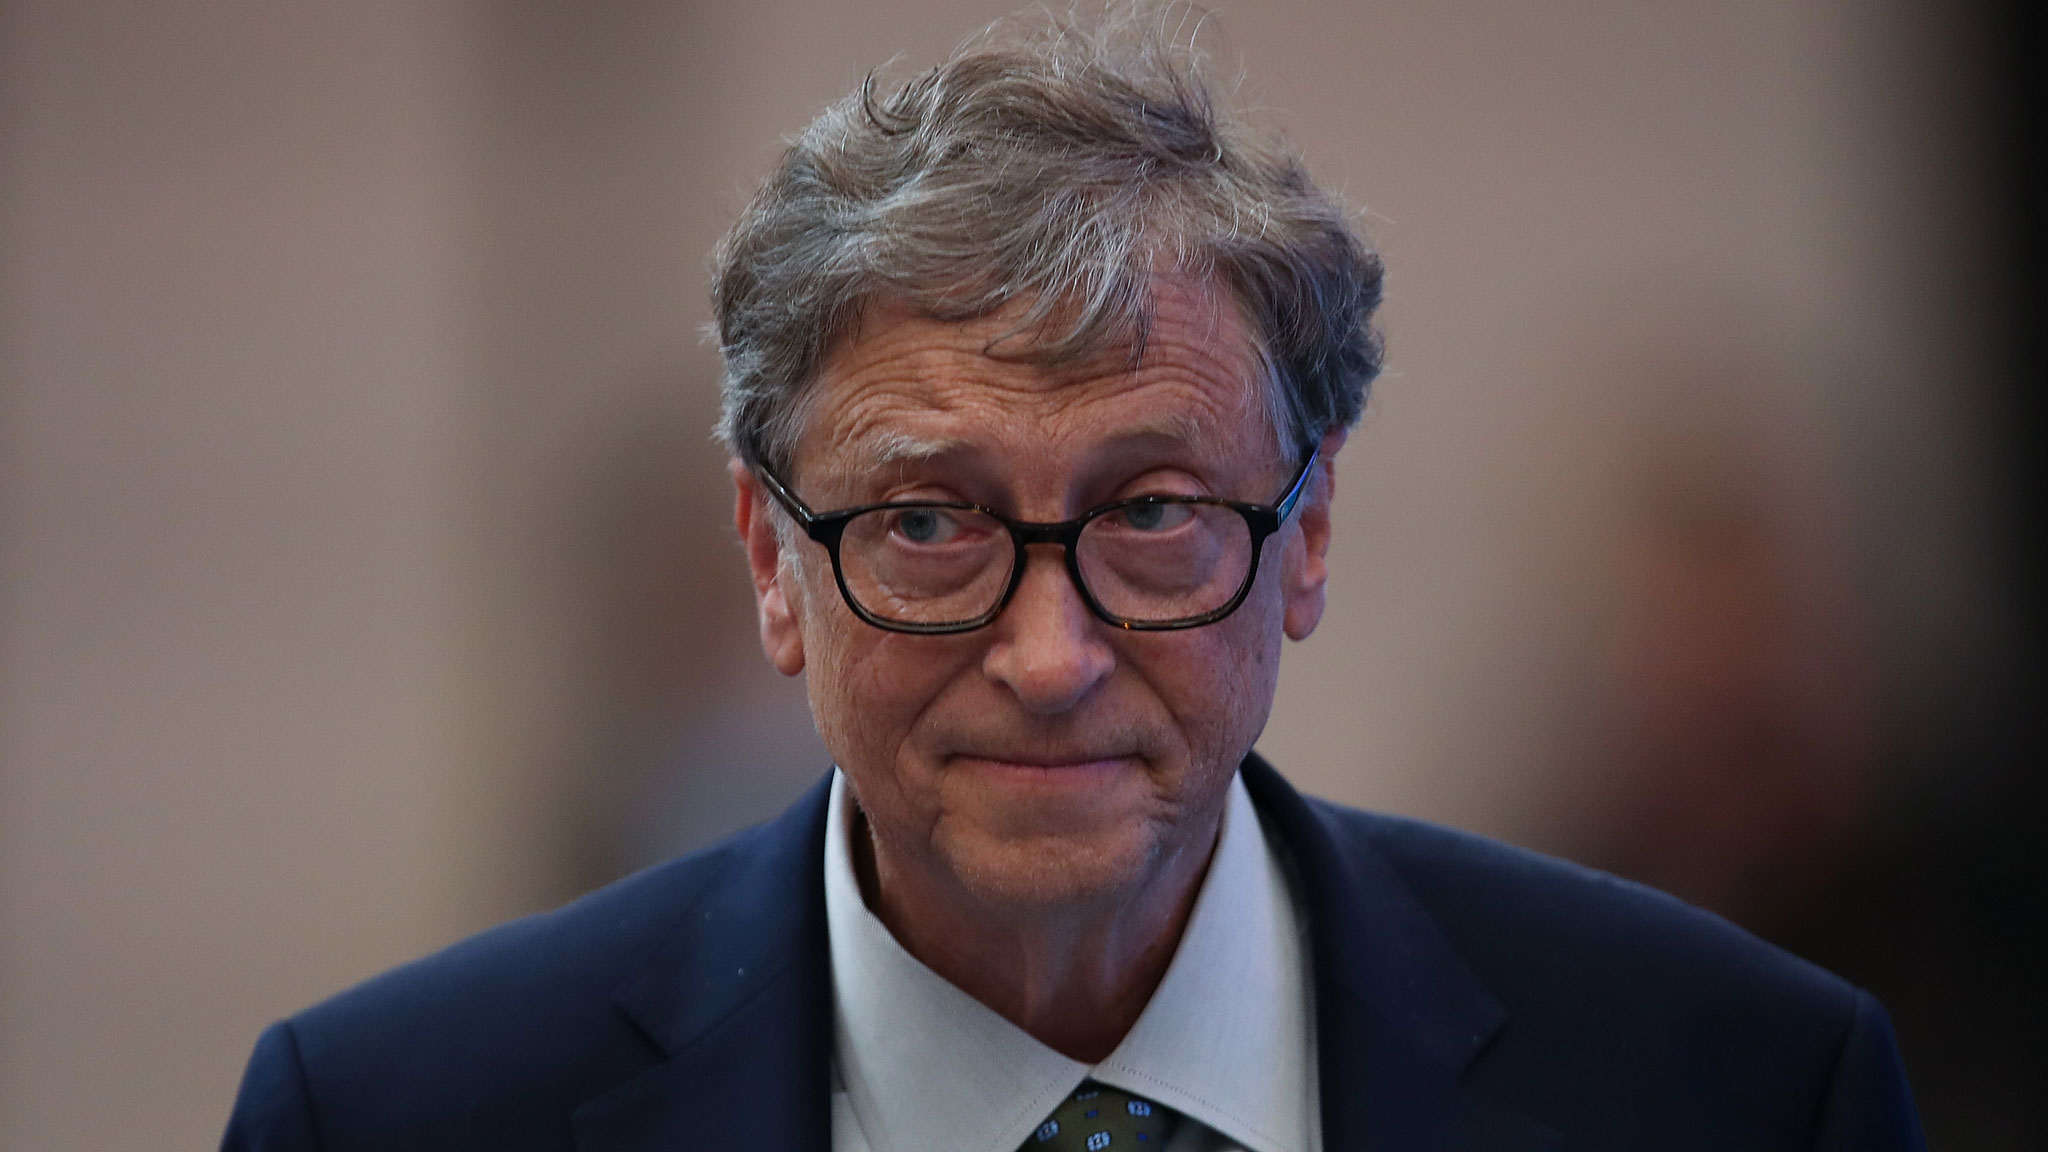 Bill Gates: world needs to move faster on tackling inequality